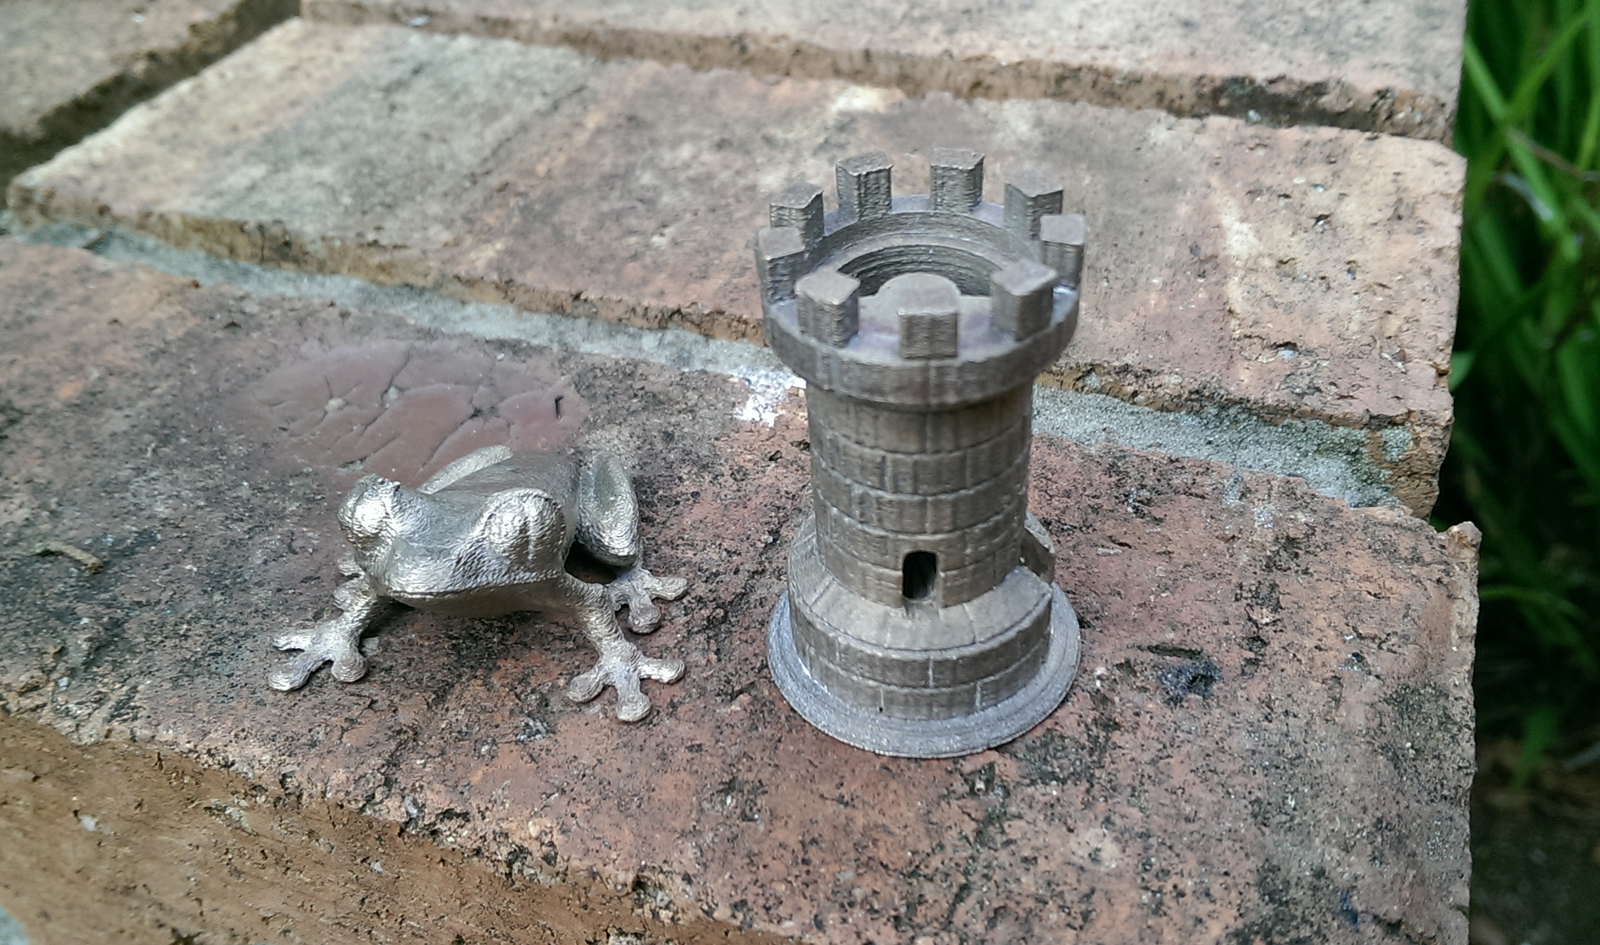 Investment casting of some miniature, highly detailed parts and aluminium.